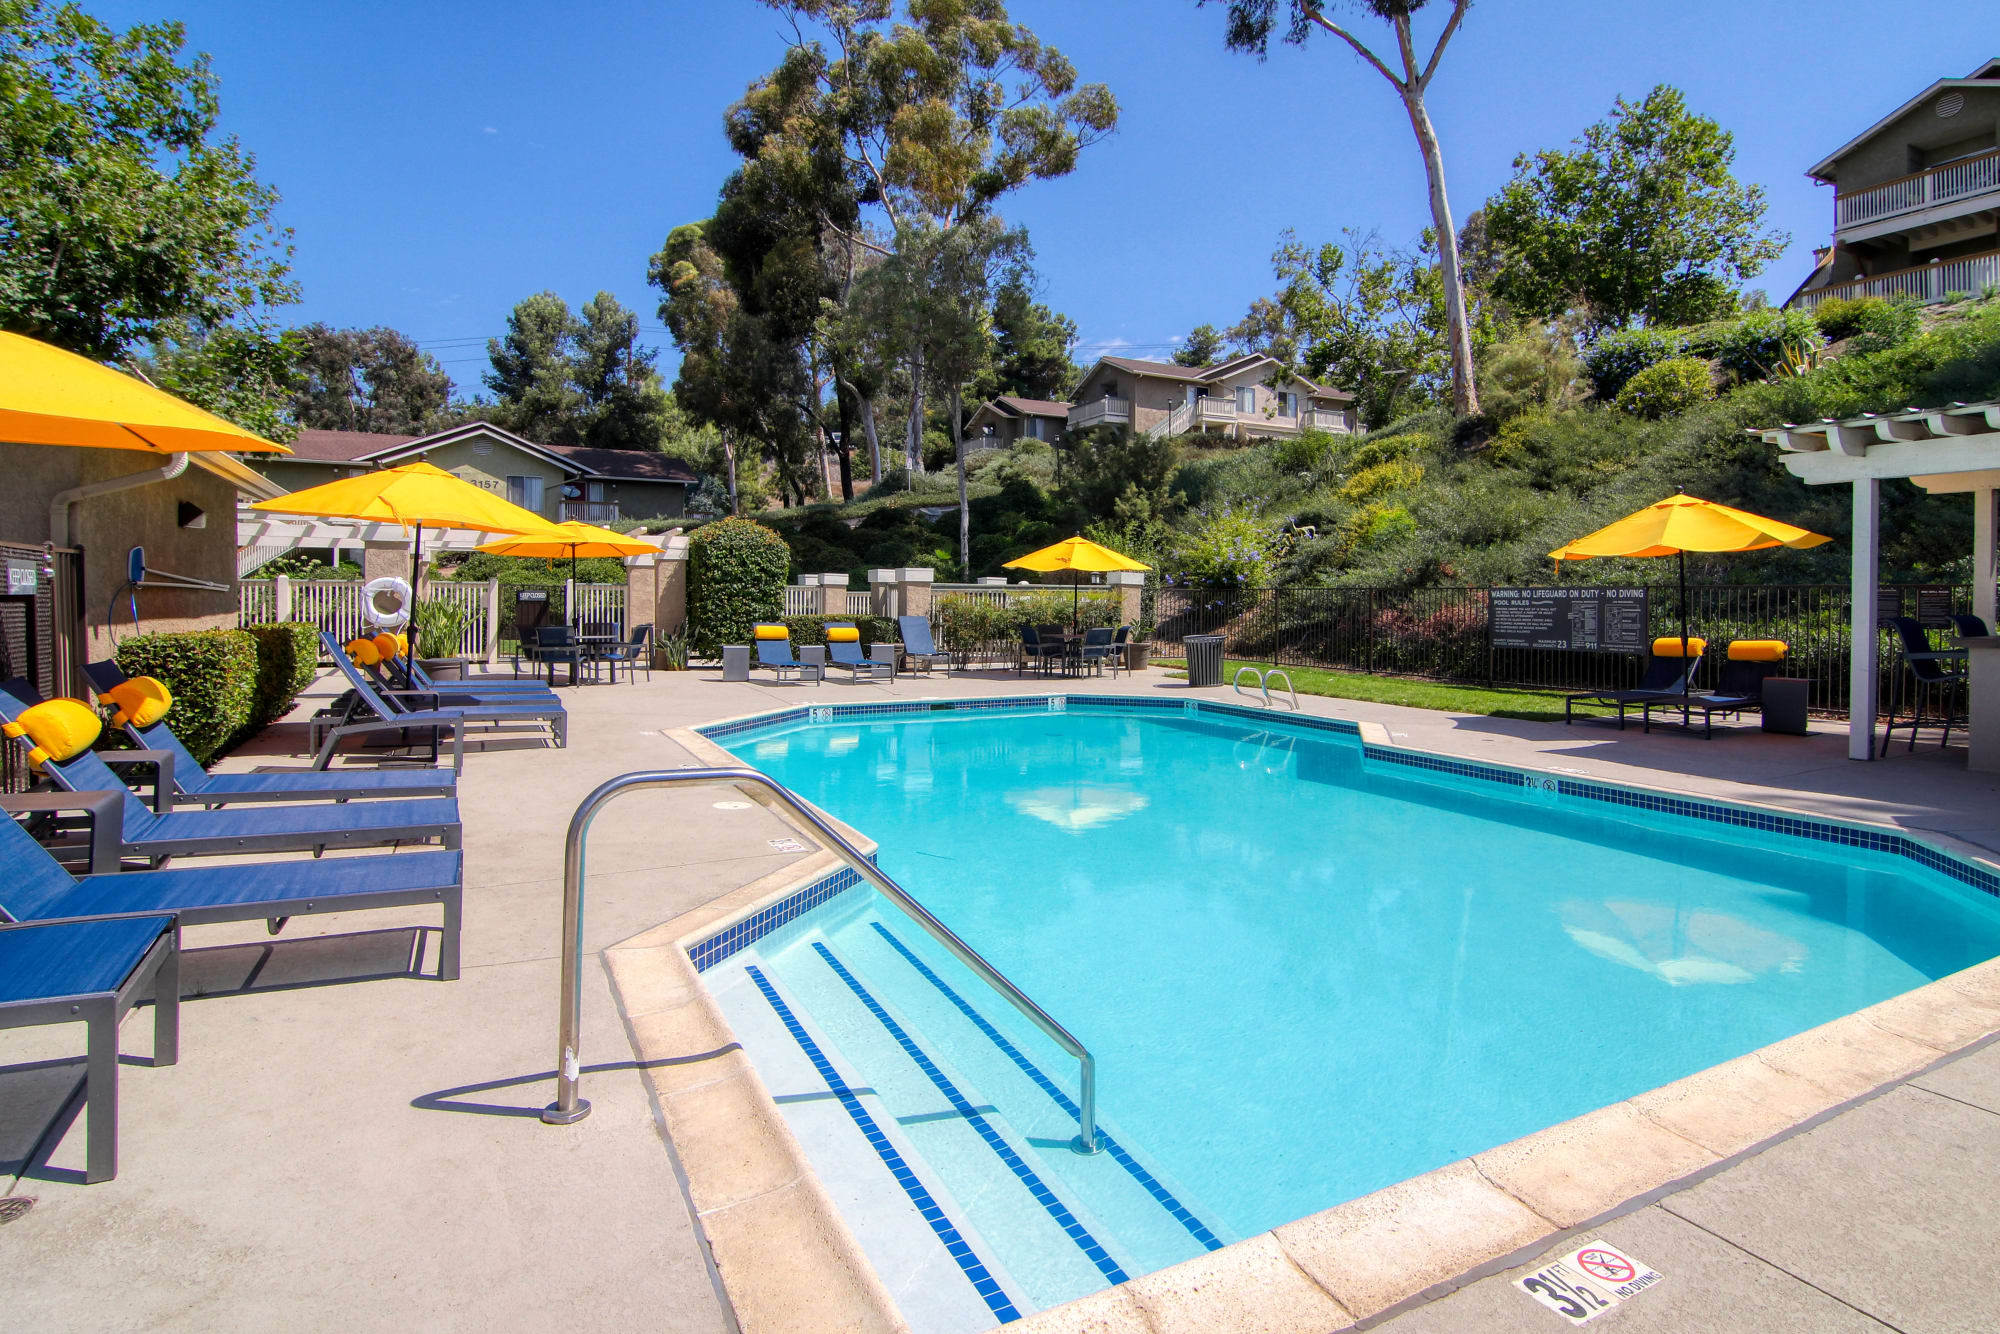 Beautiful pool at Lakeview Village Apartments in Spring Valley, California